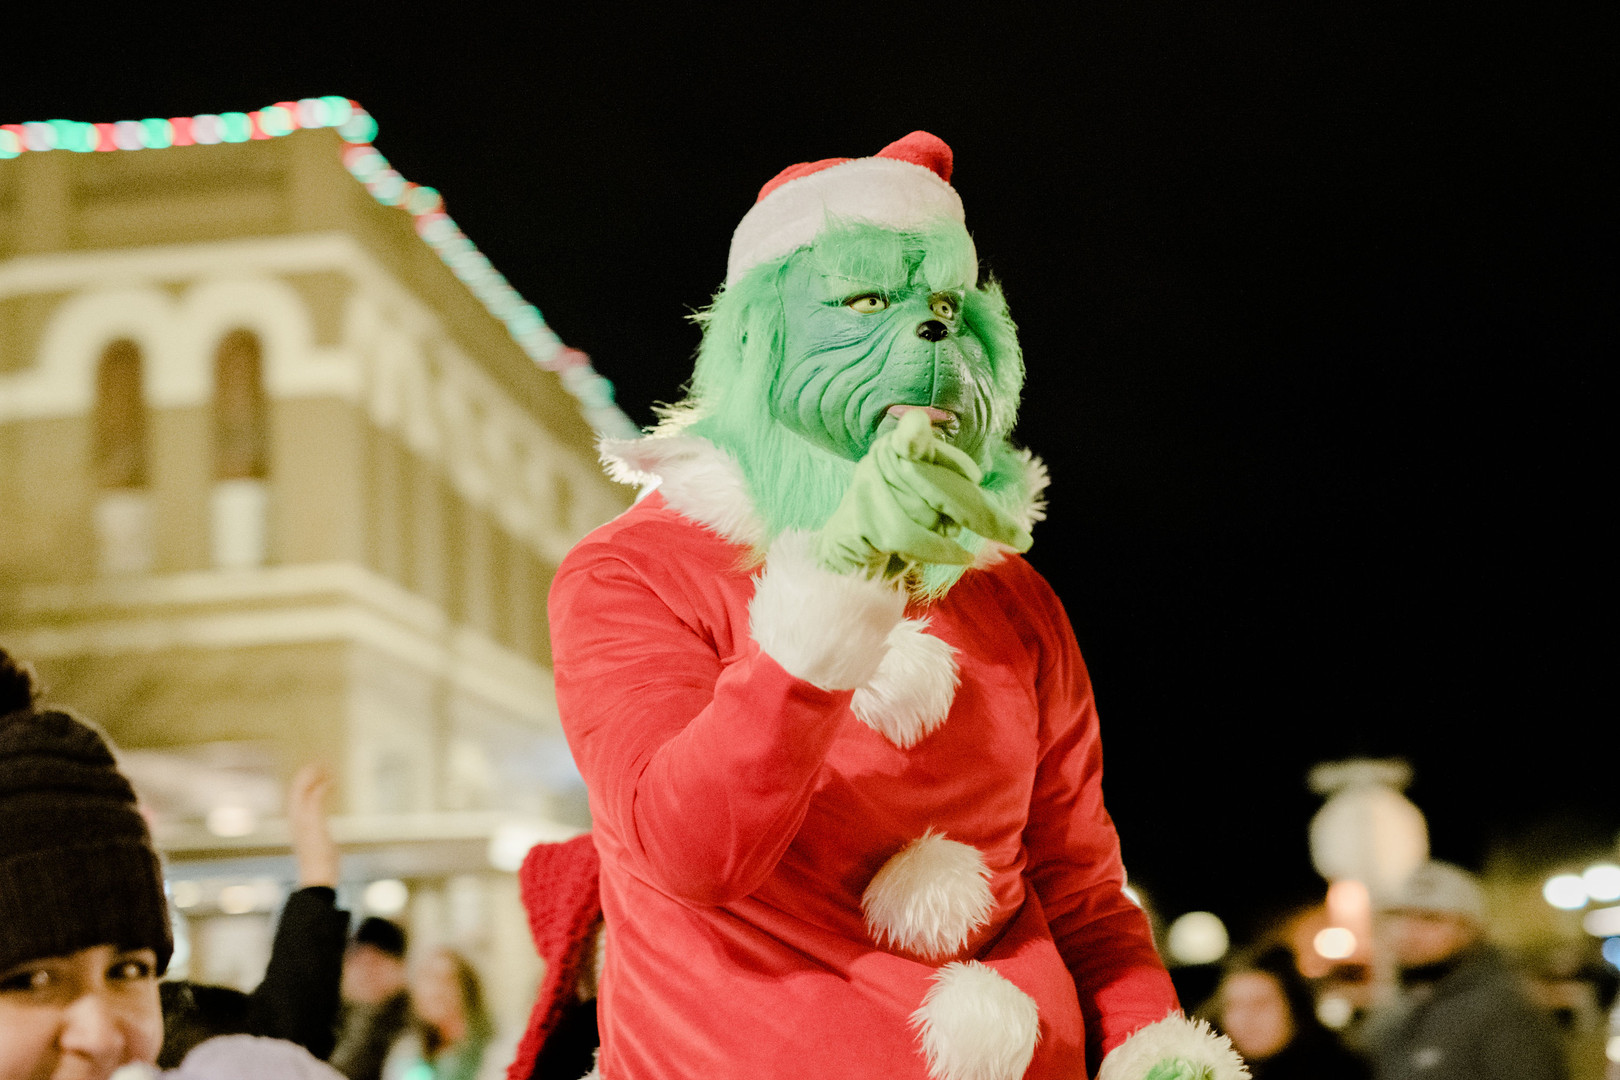 Downtown-Bryan-Christmas-Parade-2018-59.